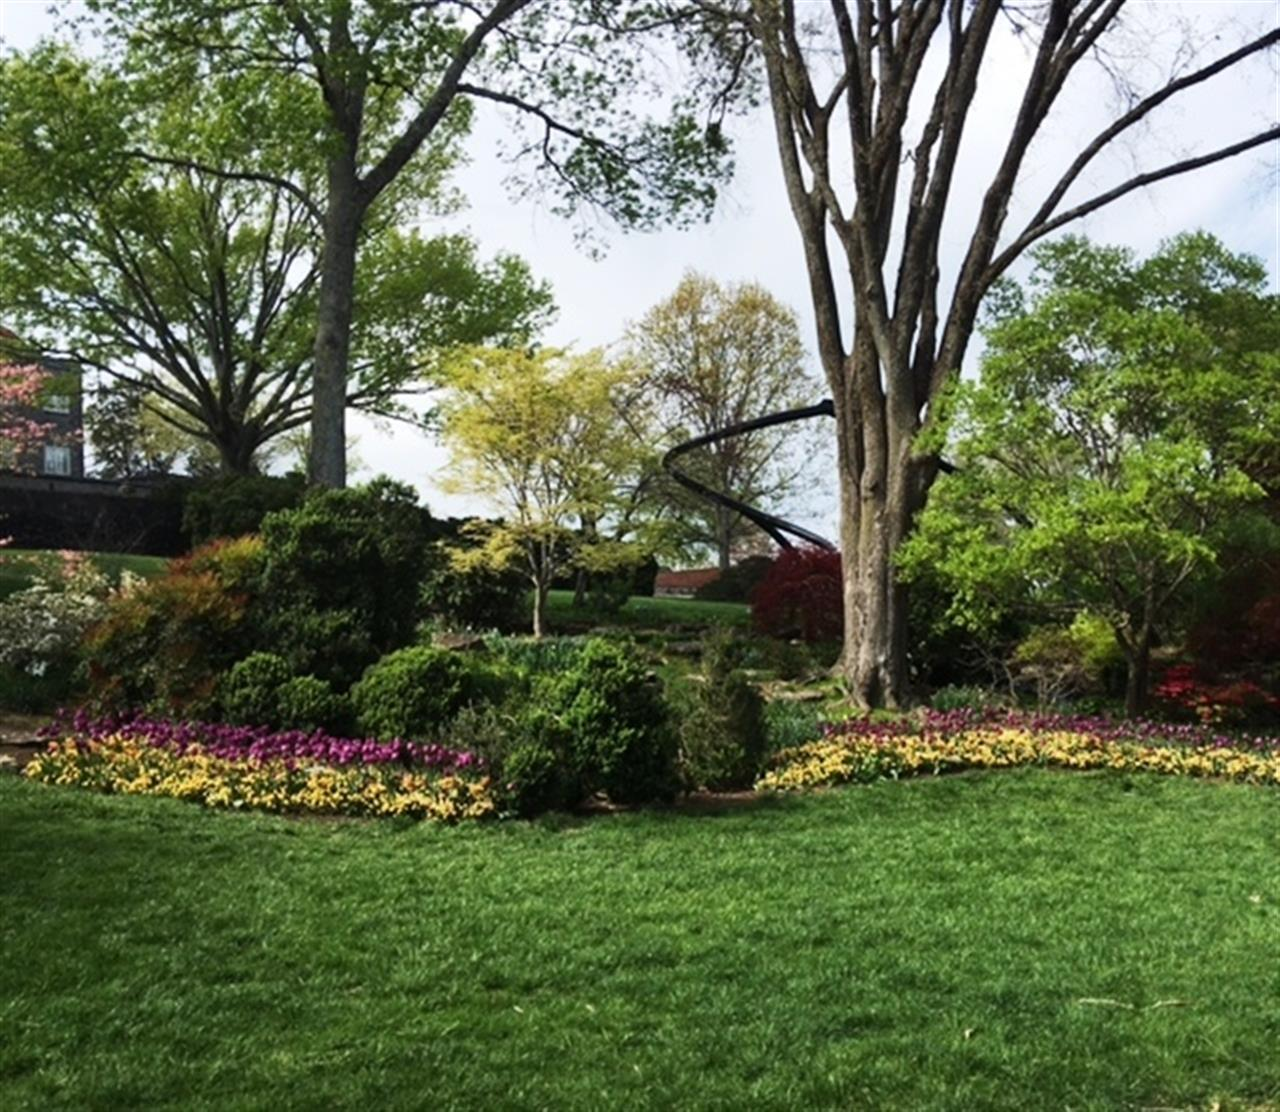 View of the Garden in front of the Mansion at Cheekwood Botanical Gardens in Nashville, TN #leadingRElocal